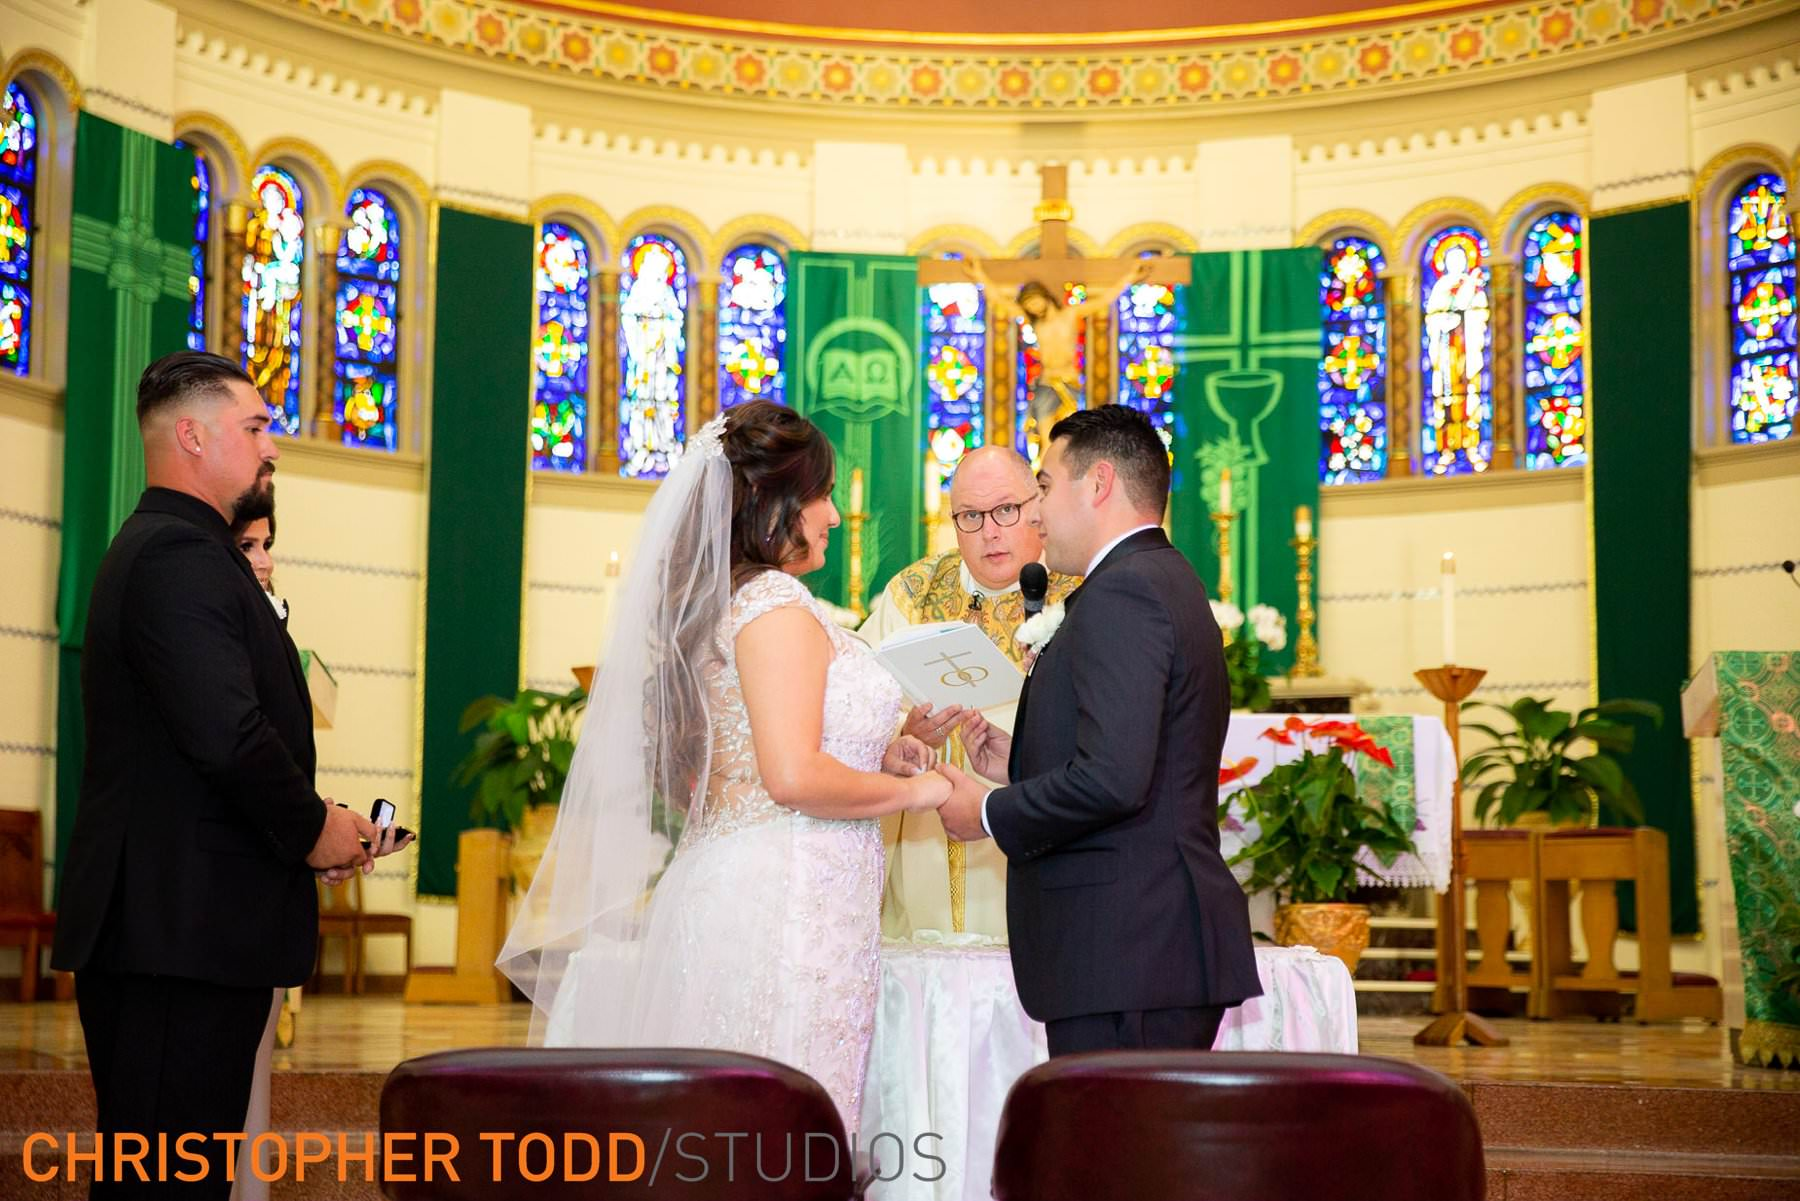 millennium-biltmore-hotel-wedding-photos